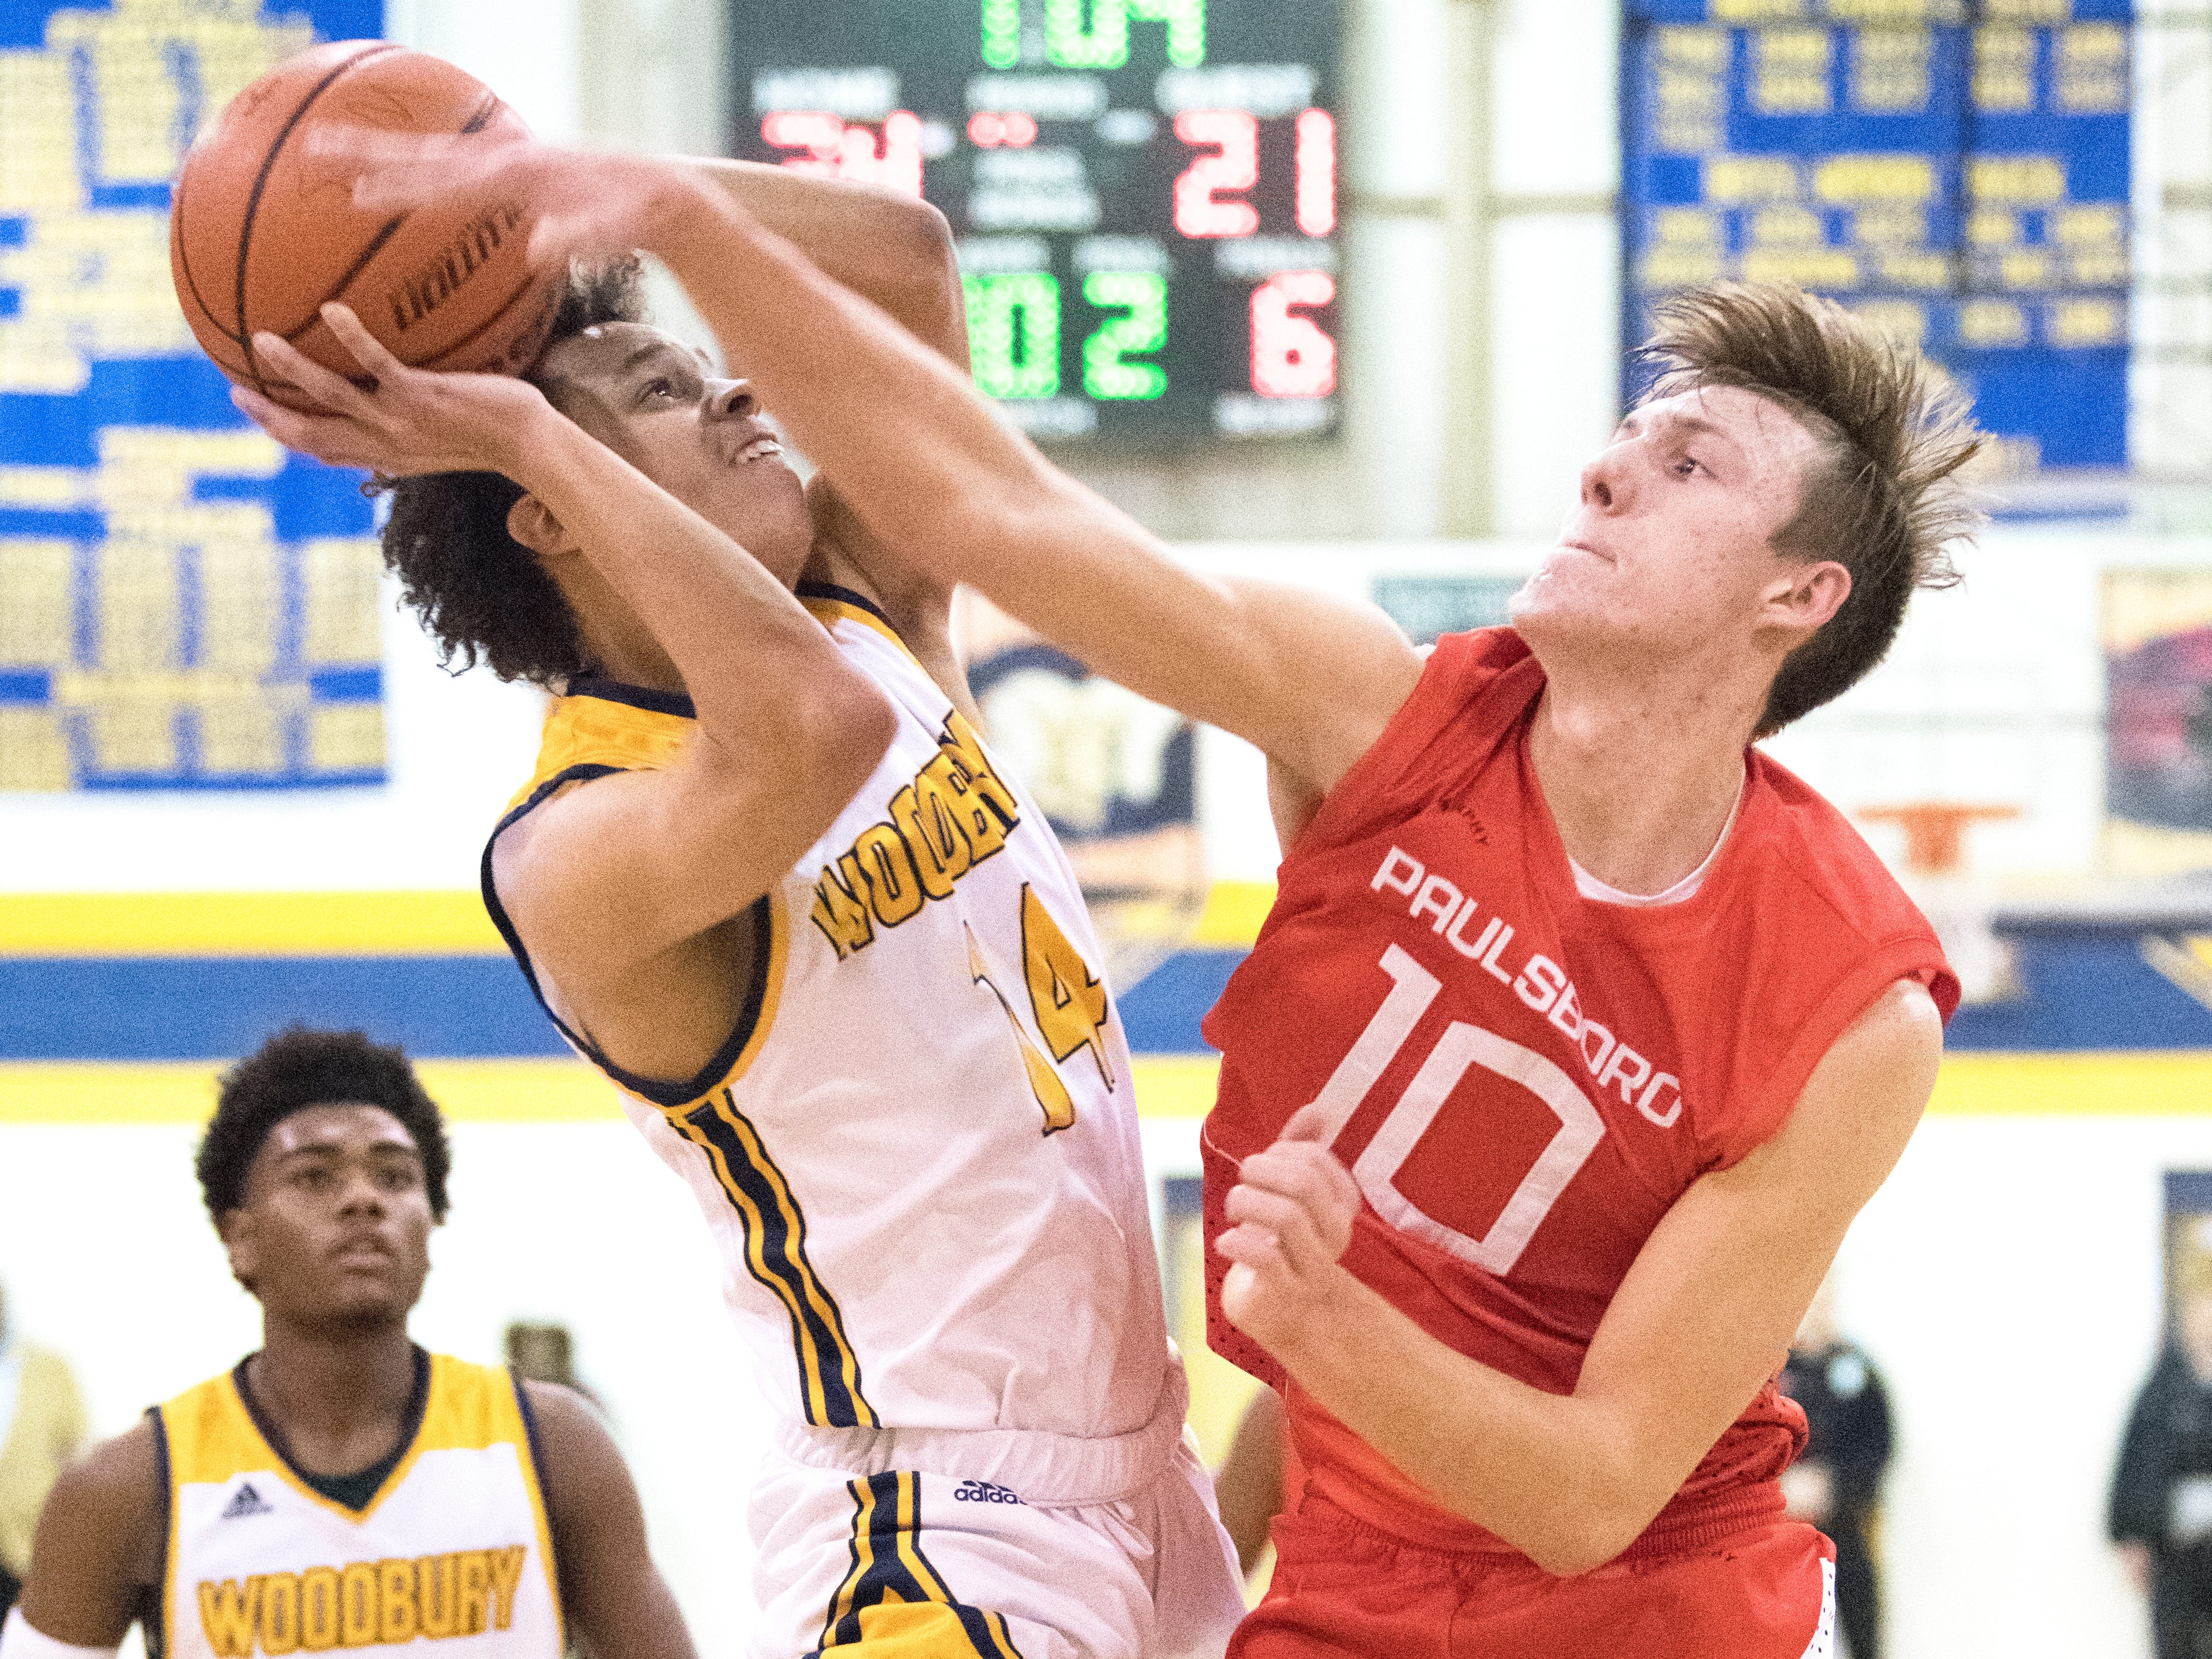 Woodbury's  Richard Oakley is fouled by Paulsboro's Nick Pellegrini during the 2nd quarter of the South Jersey Group 1, first round boys basketball playoff game played at Woodbury High School on Tuesday, February 26, 2019.   Woodbury defeated Paulsboro, 69-41.